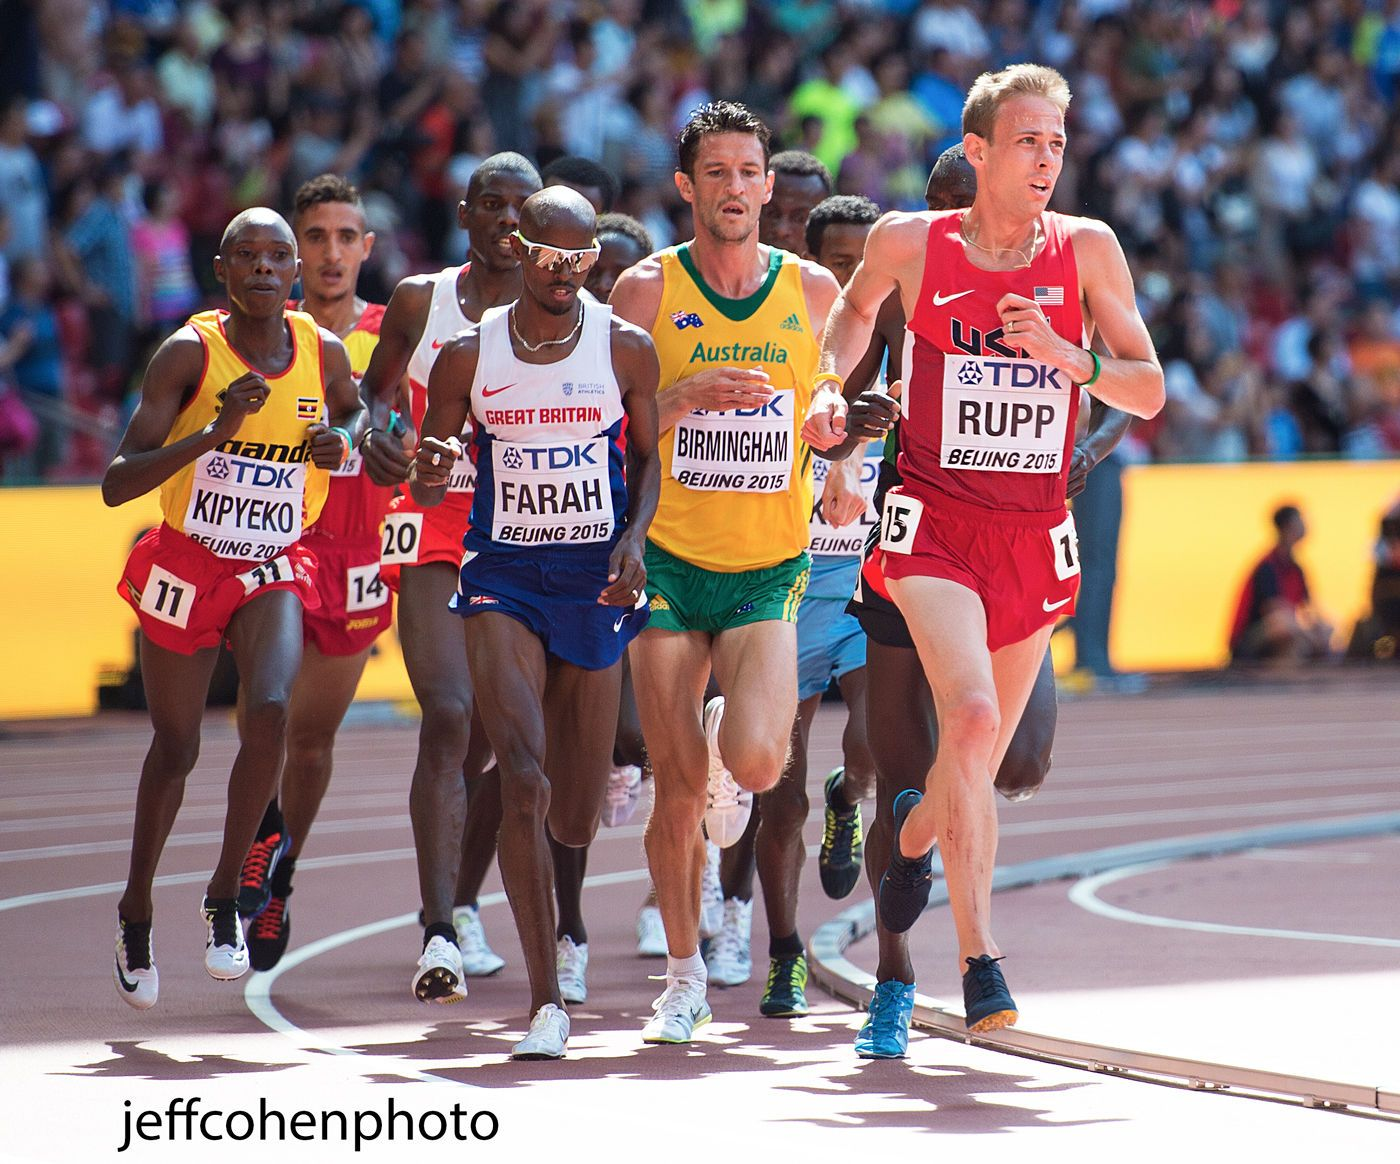 1beijing2015_day_5_galen_rupp_farah_5k_heat_jeff_cohen_photo_17362_web.jpg